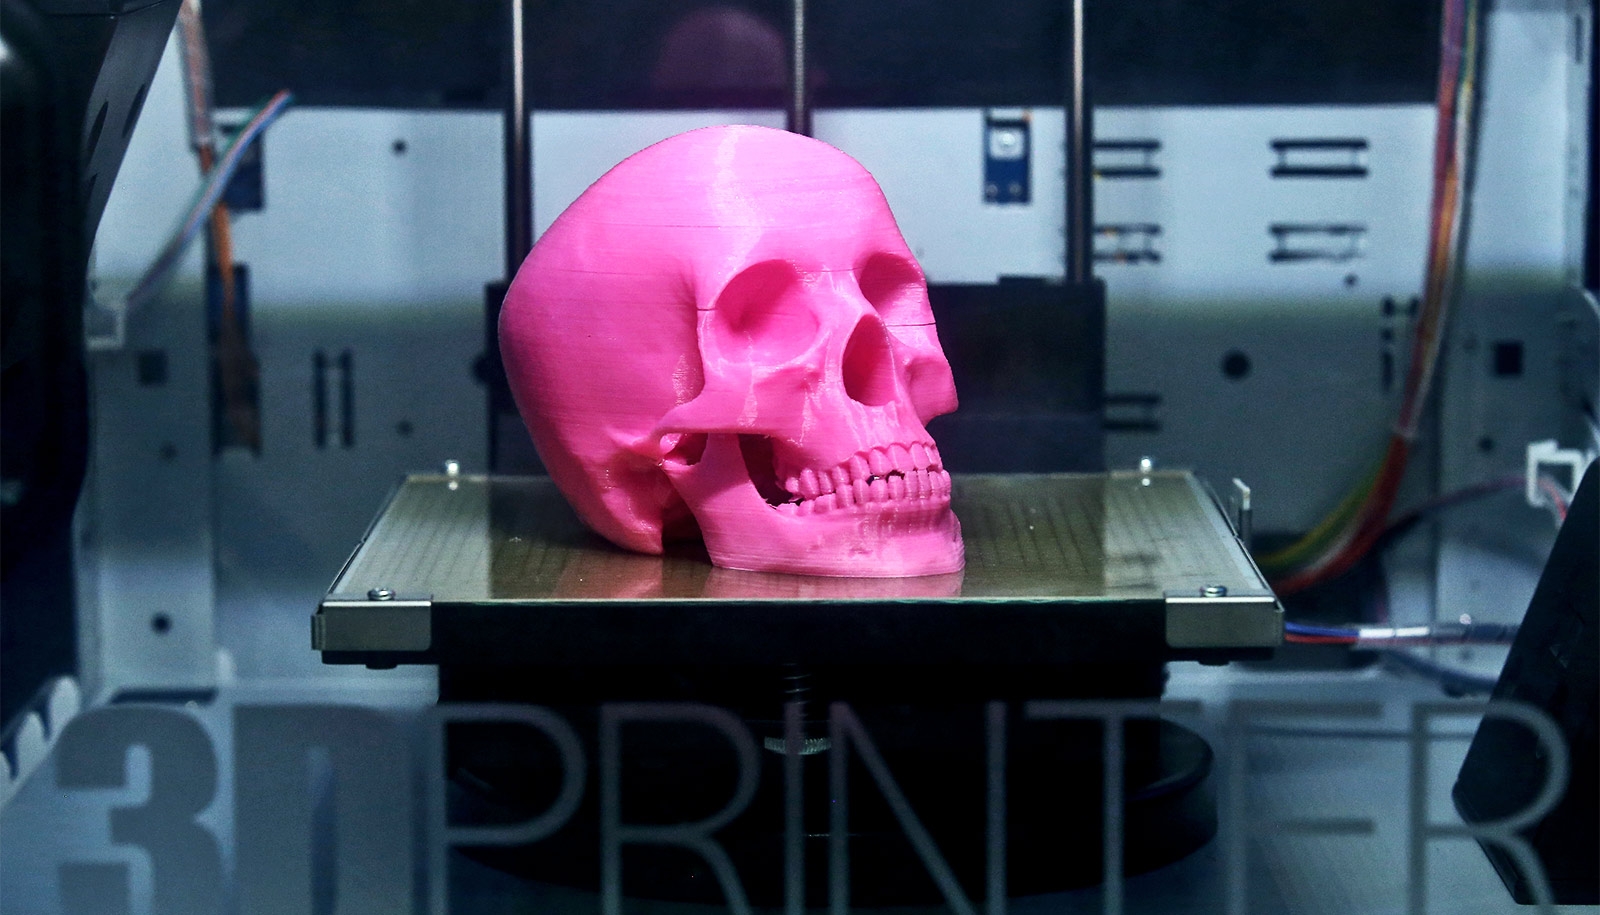 Particles from 3D printers may be bad for your health